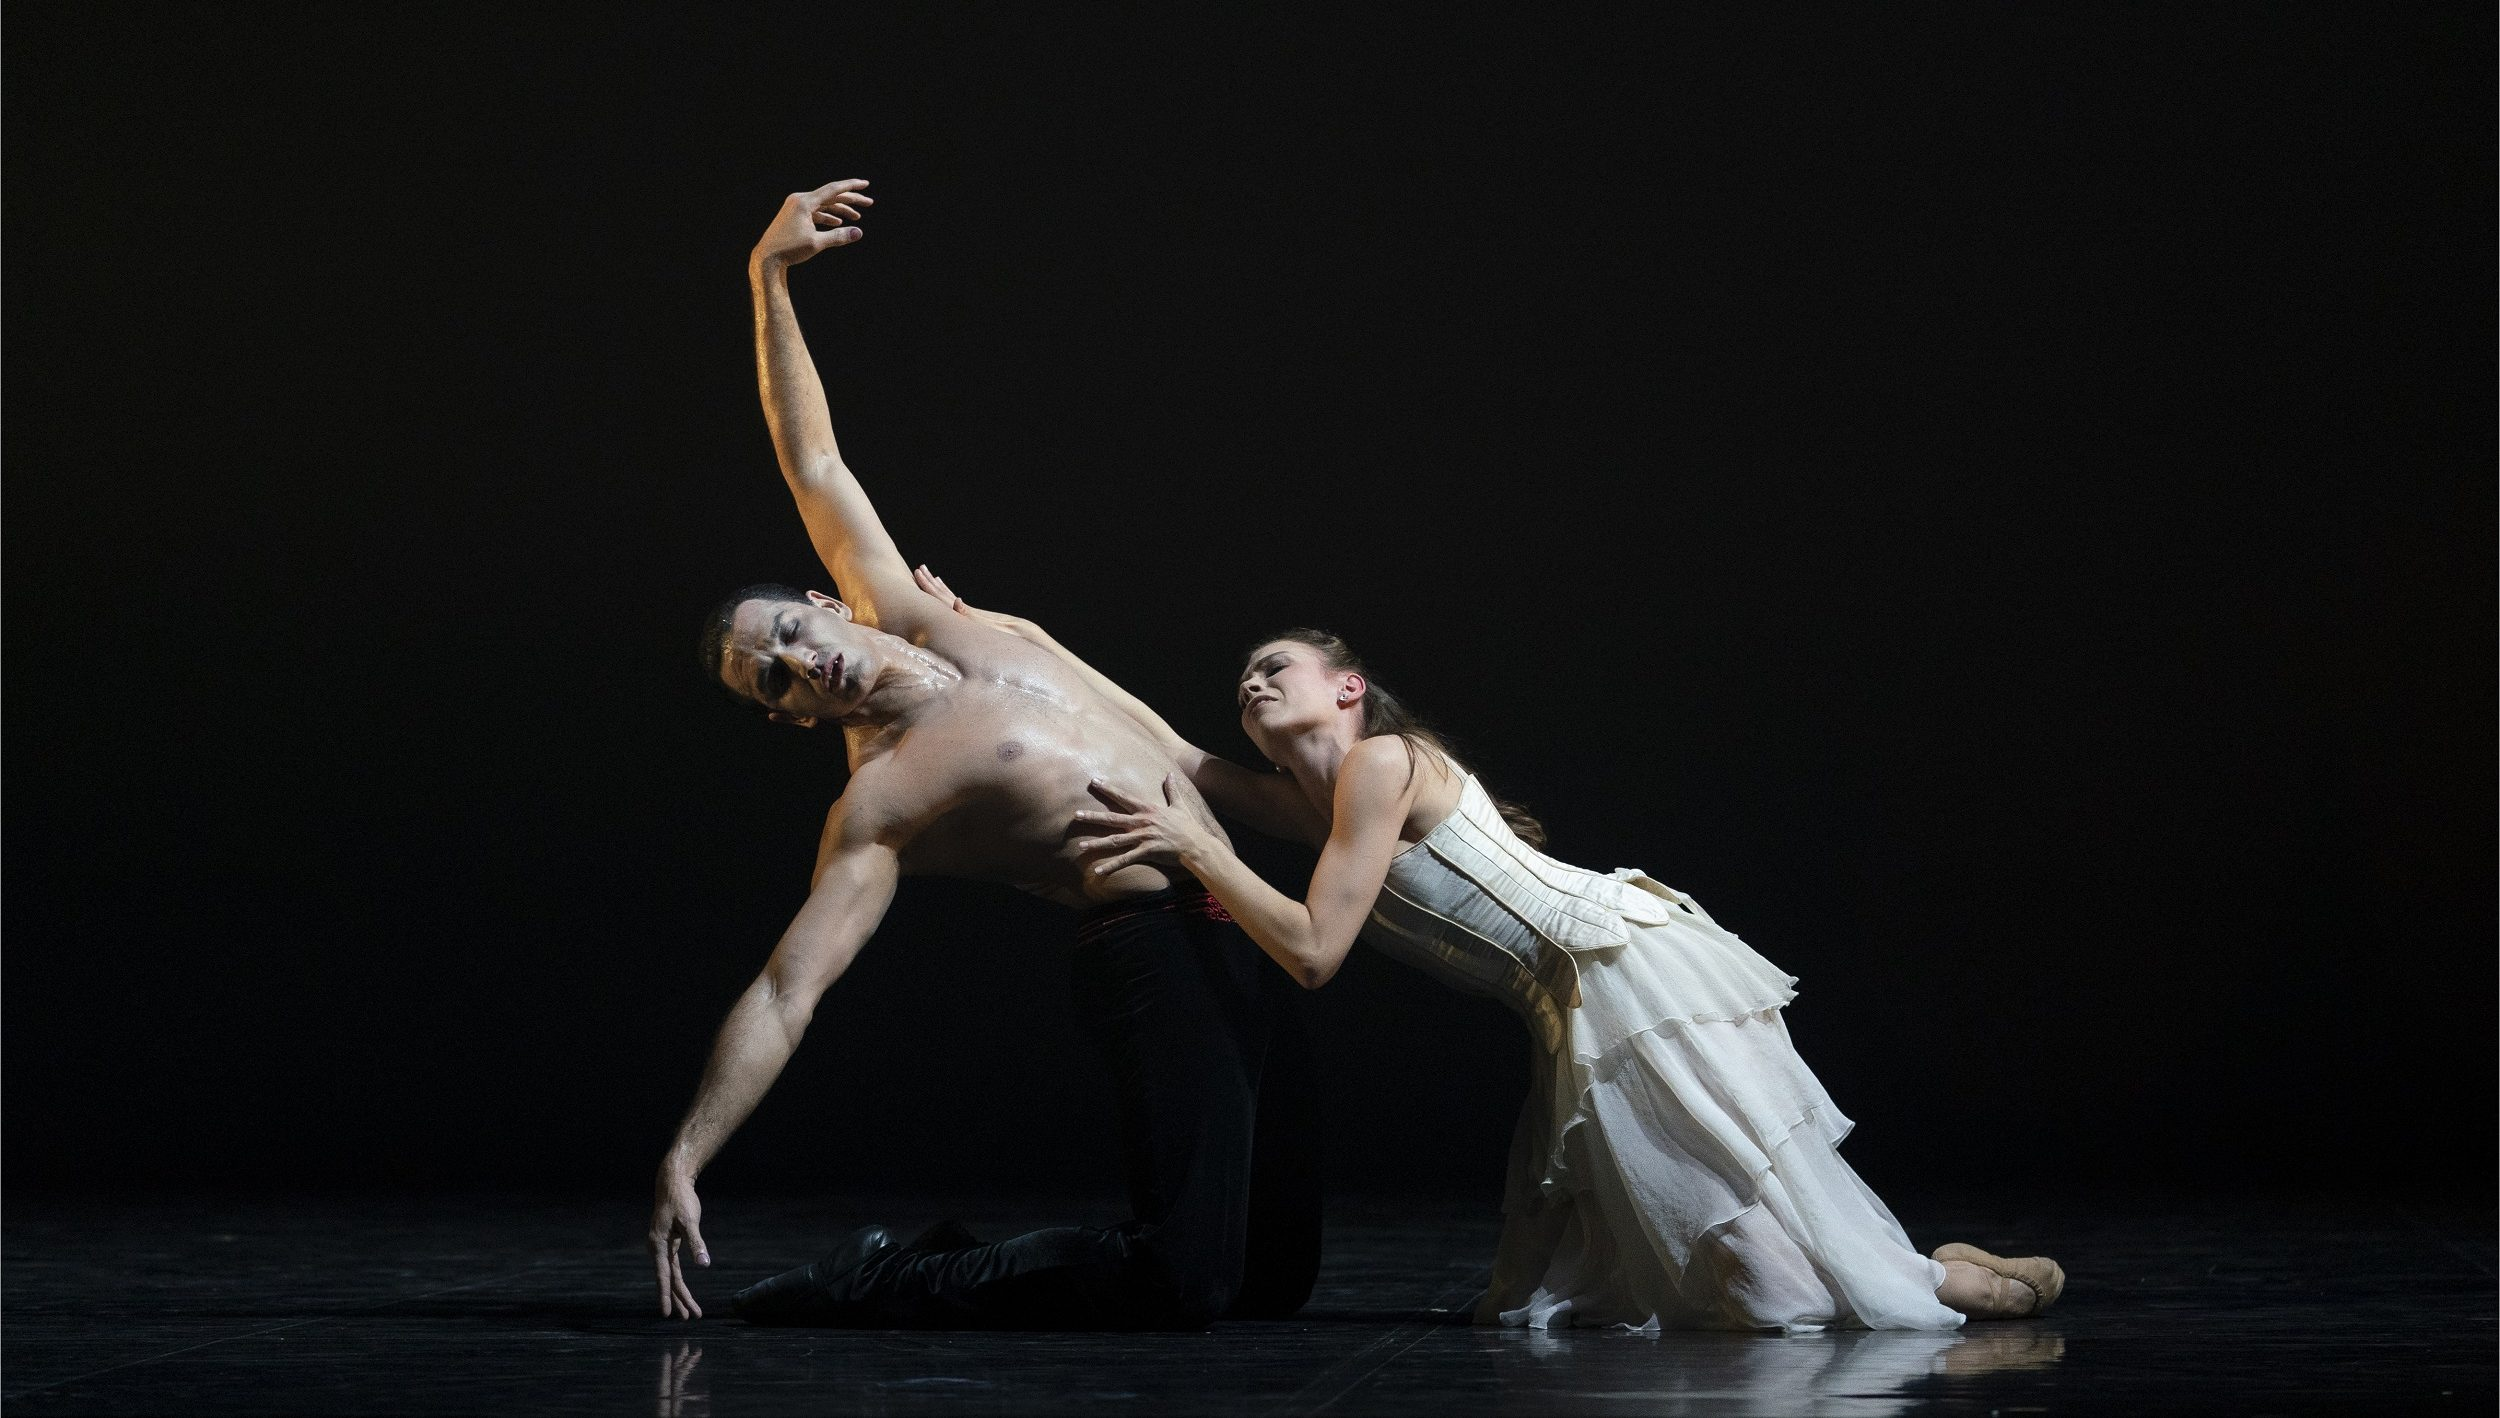 Northern Ballet' Dracula. Javier Torres as Dracula and Abigail Prudames as Mina. Photo by Emma Kauldhar.